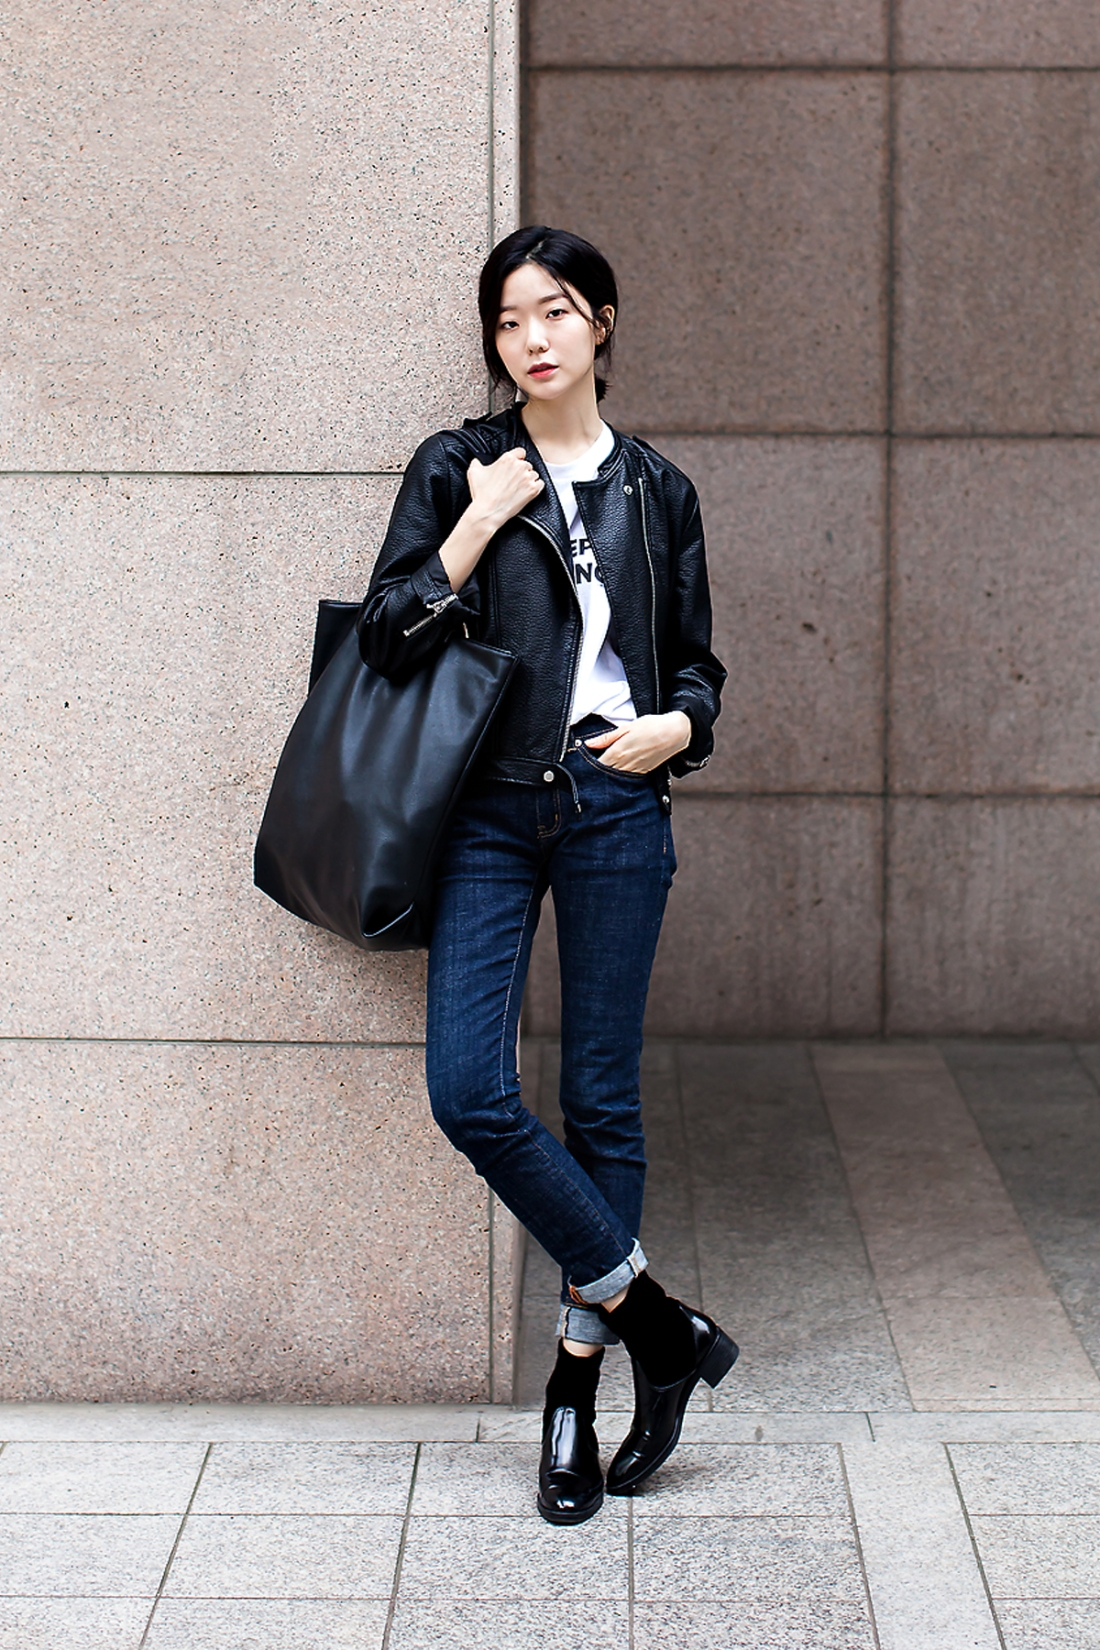 Kwak Jisoo, Street Fashion 2017 in Seoul.jpg